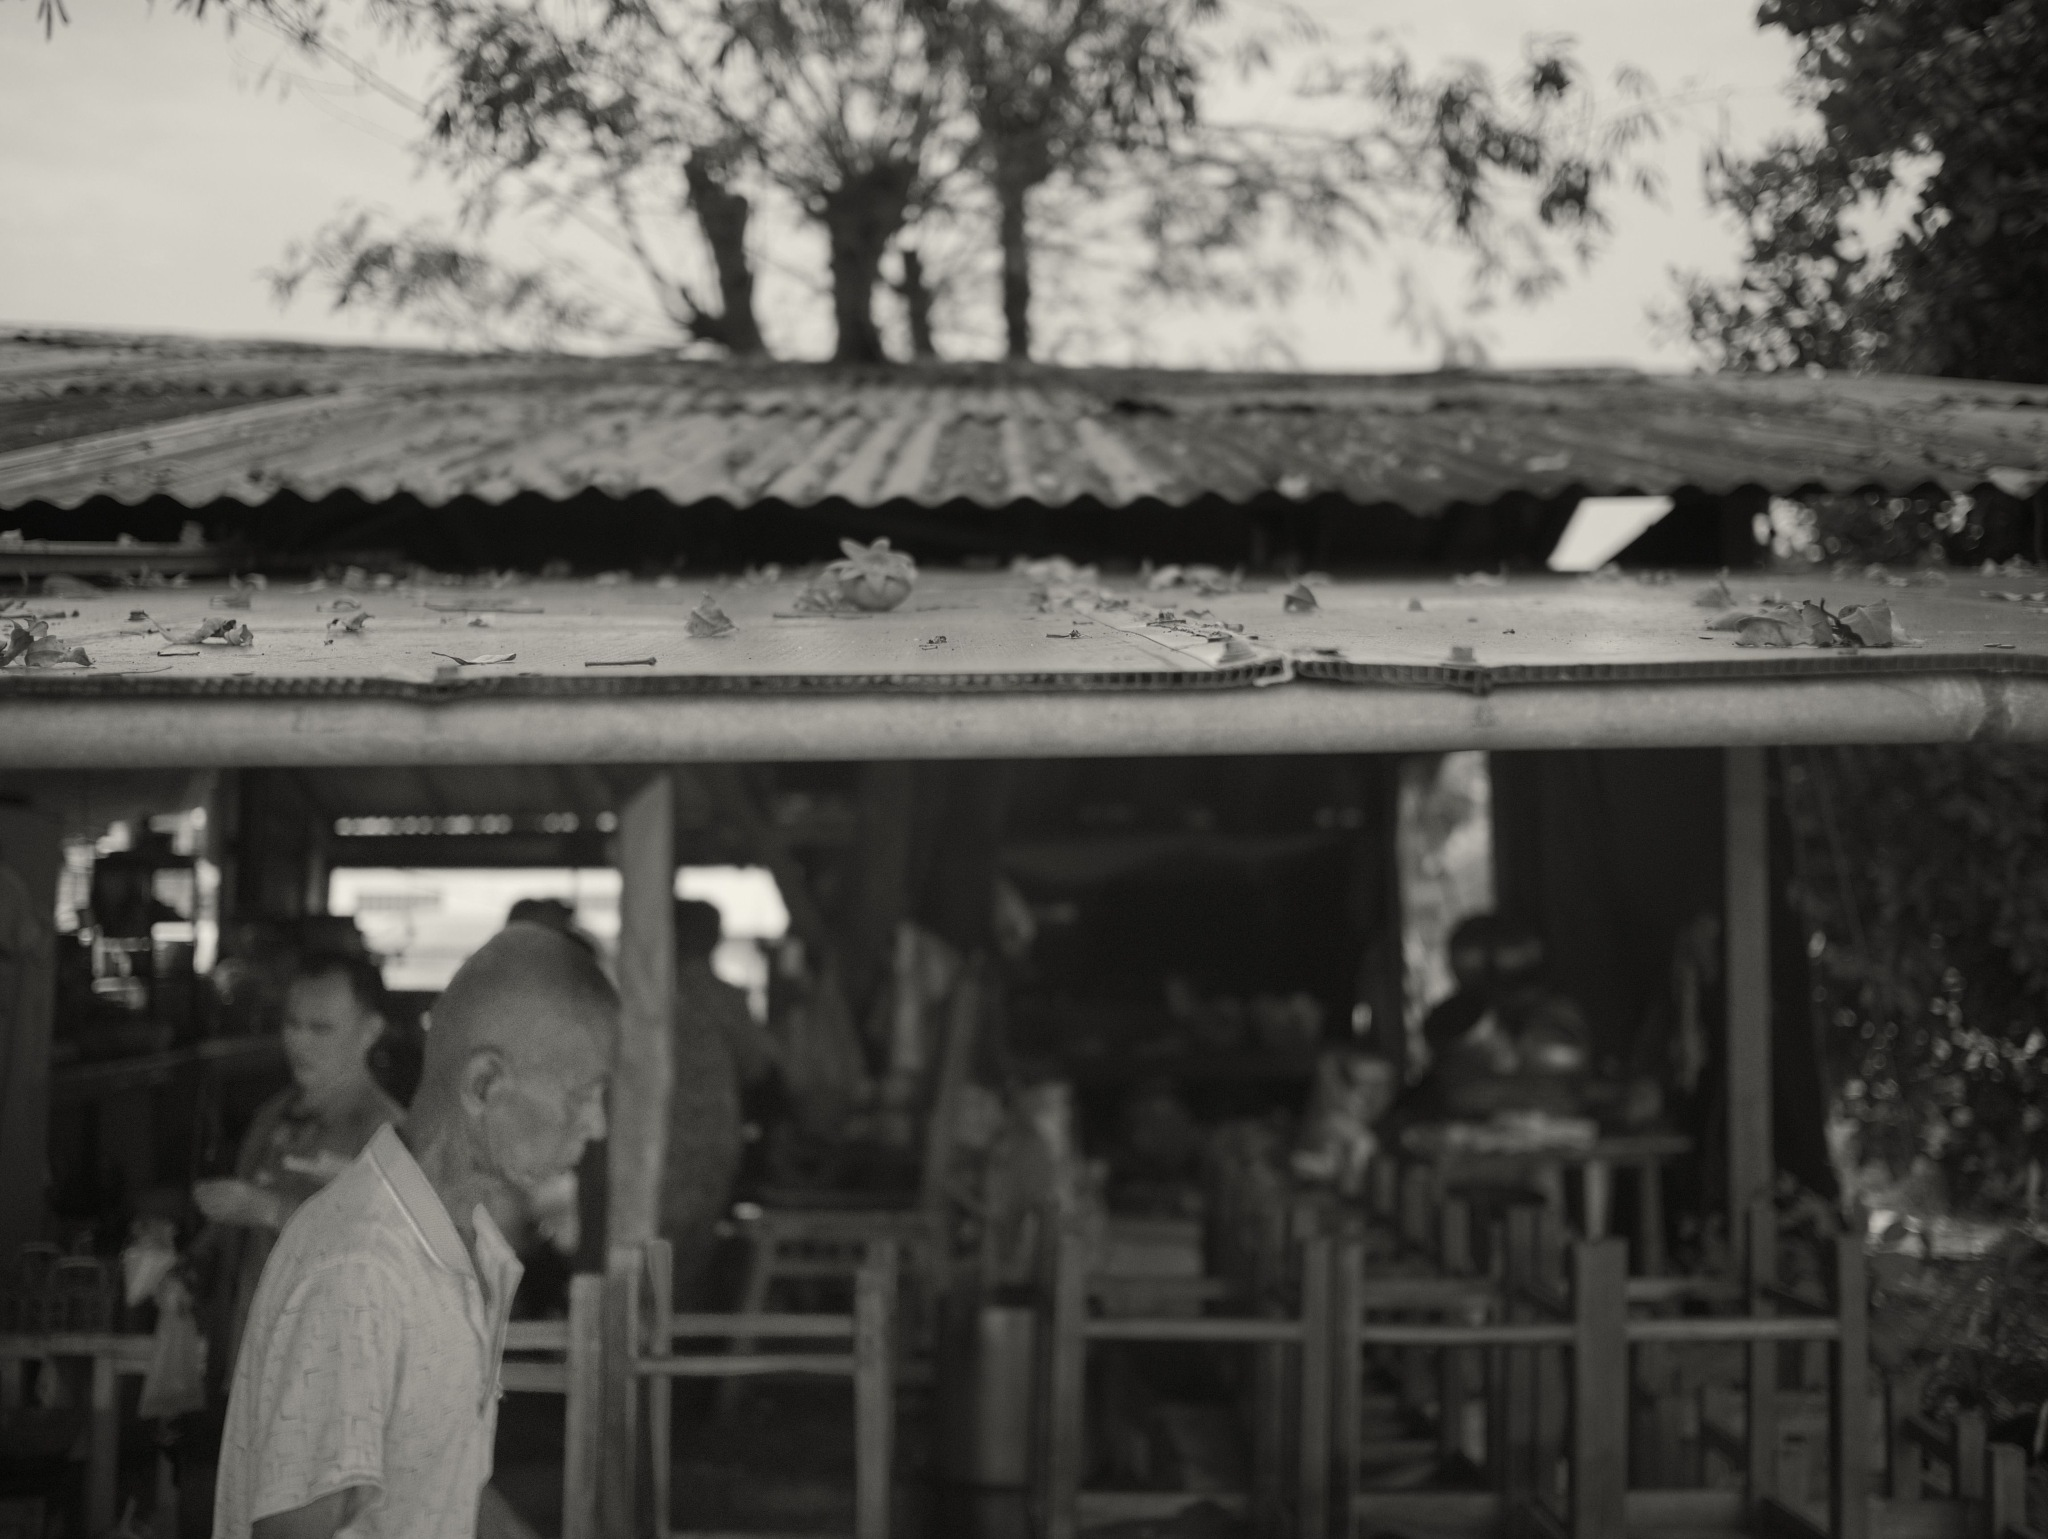 Cha Cheung Sao- past the outdoor dining by TonyG